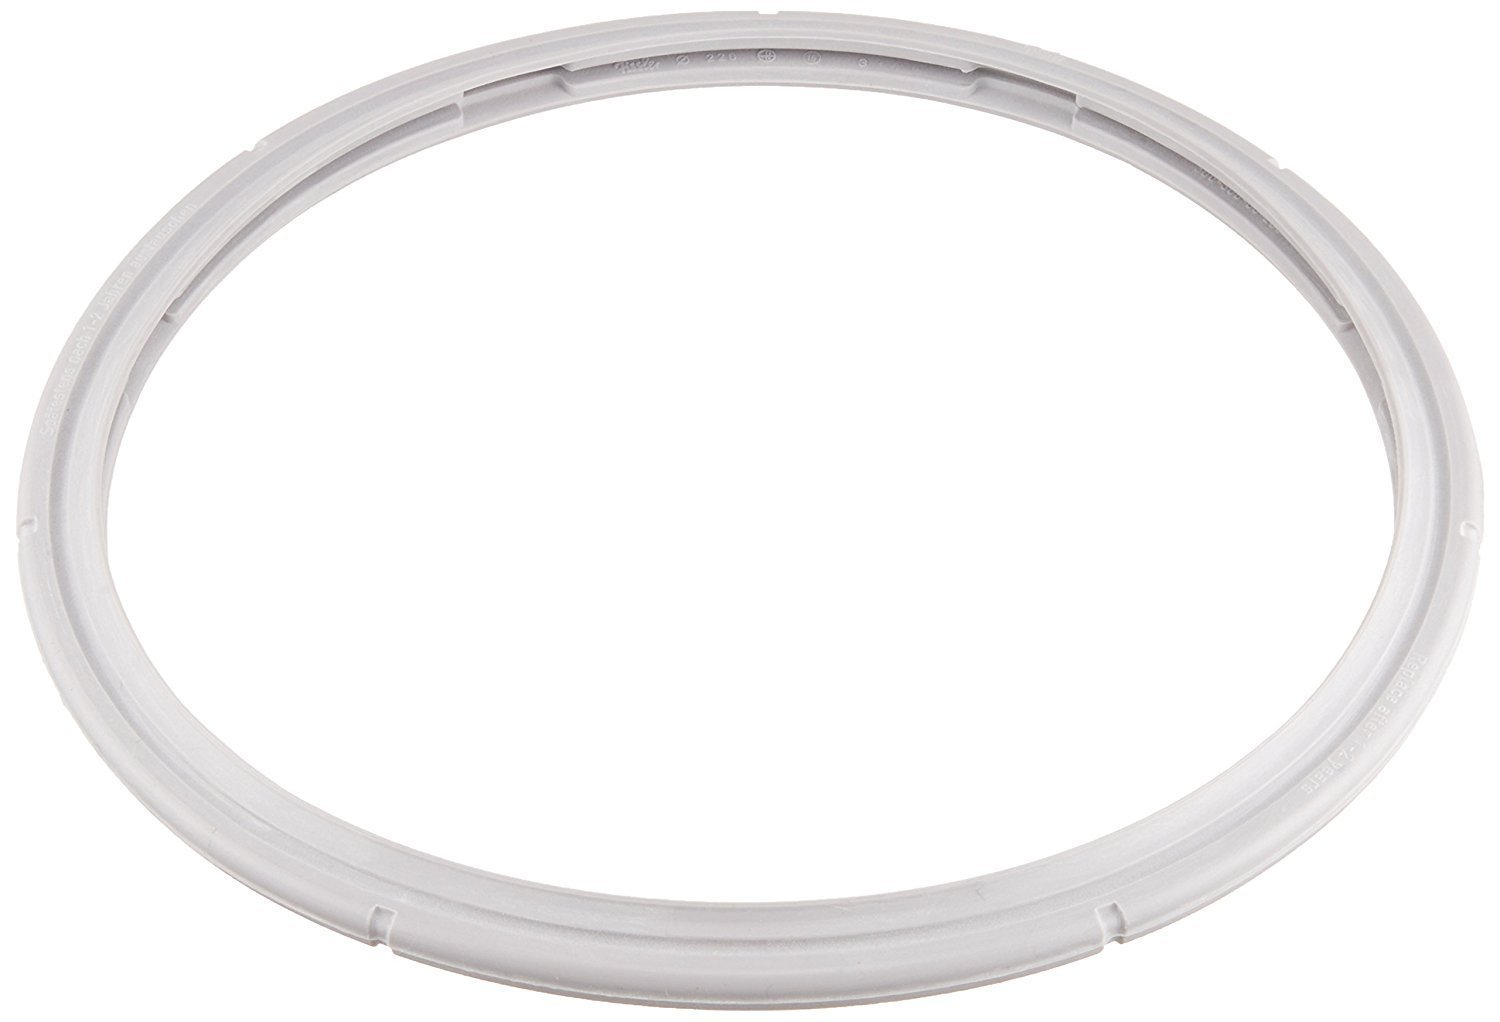 Fissler Vitaquick FIS9203 Silicone Gasket, 22 Centimeter Fissler Pressure Cookers and Skillets